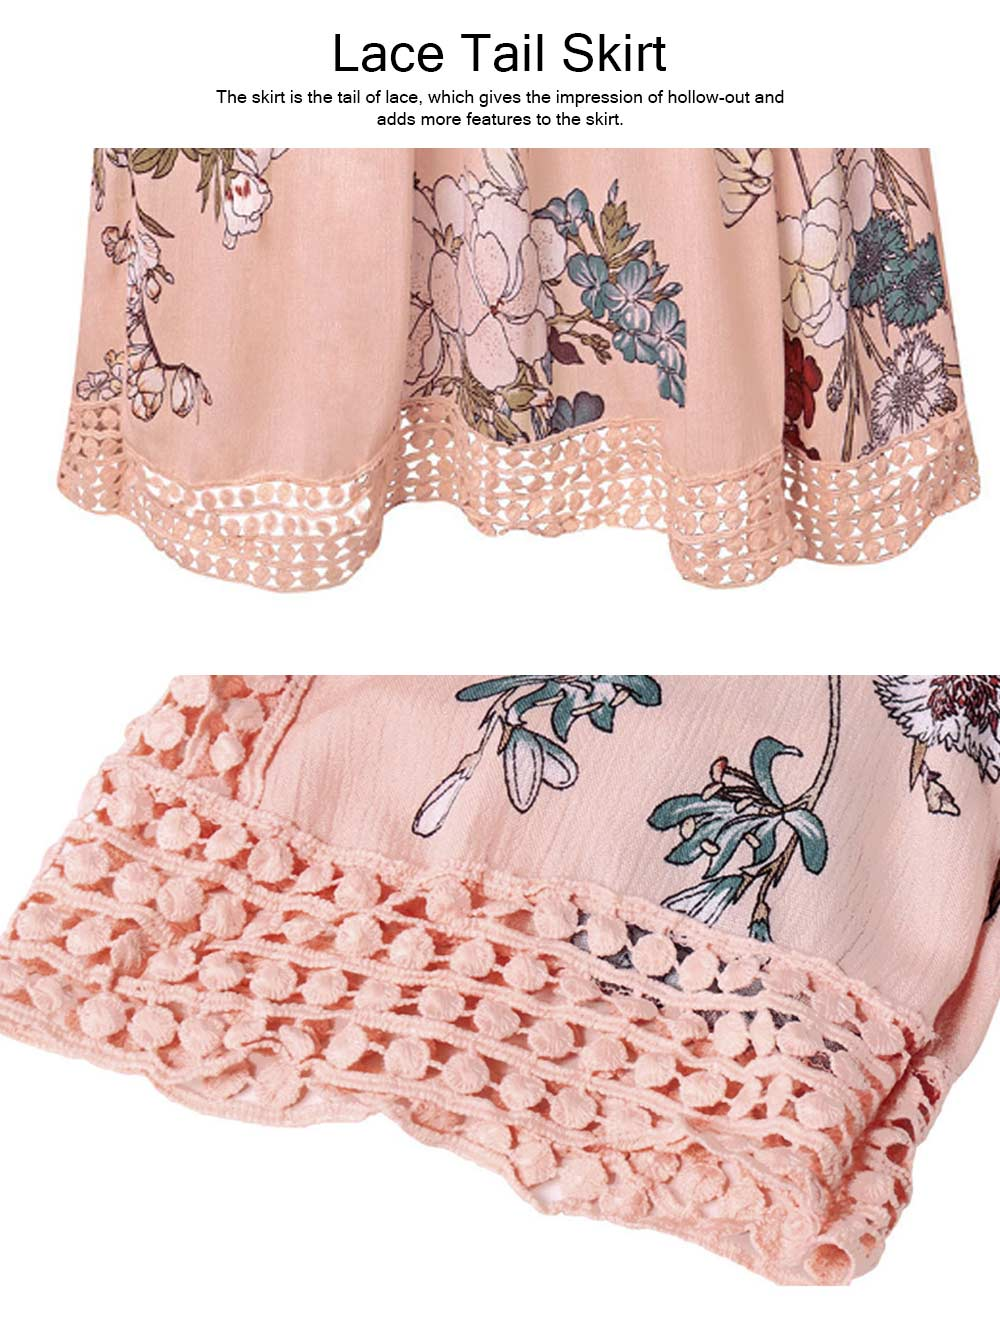 V Neck Women Dress, Breathable Short Dress with Lace Tail, Printing Pink Kilt, Women One-piece Dress Summer Pink 2019 2